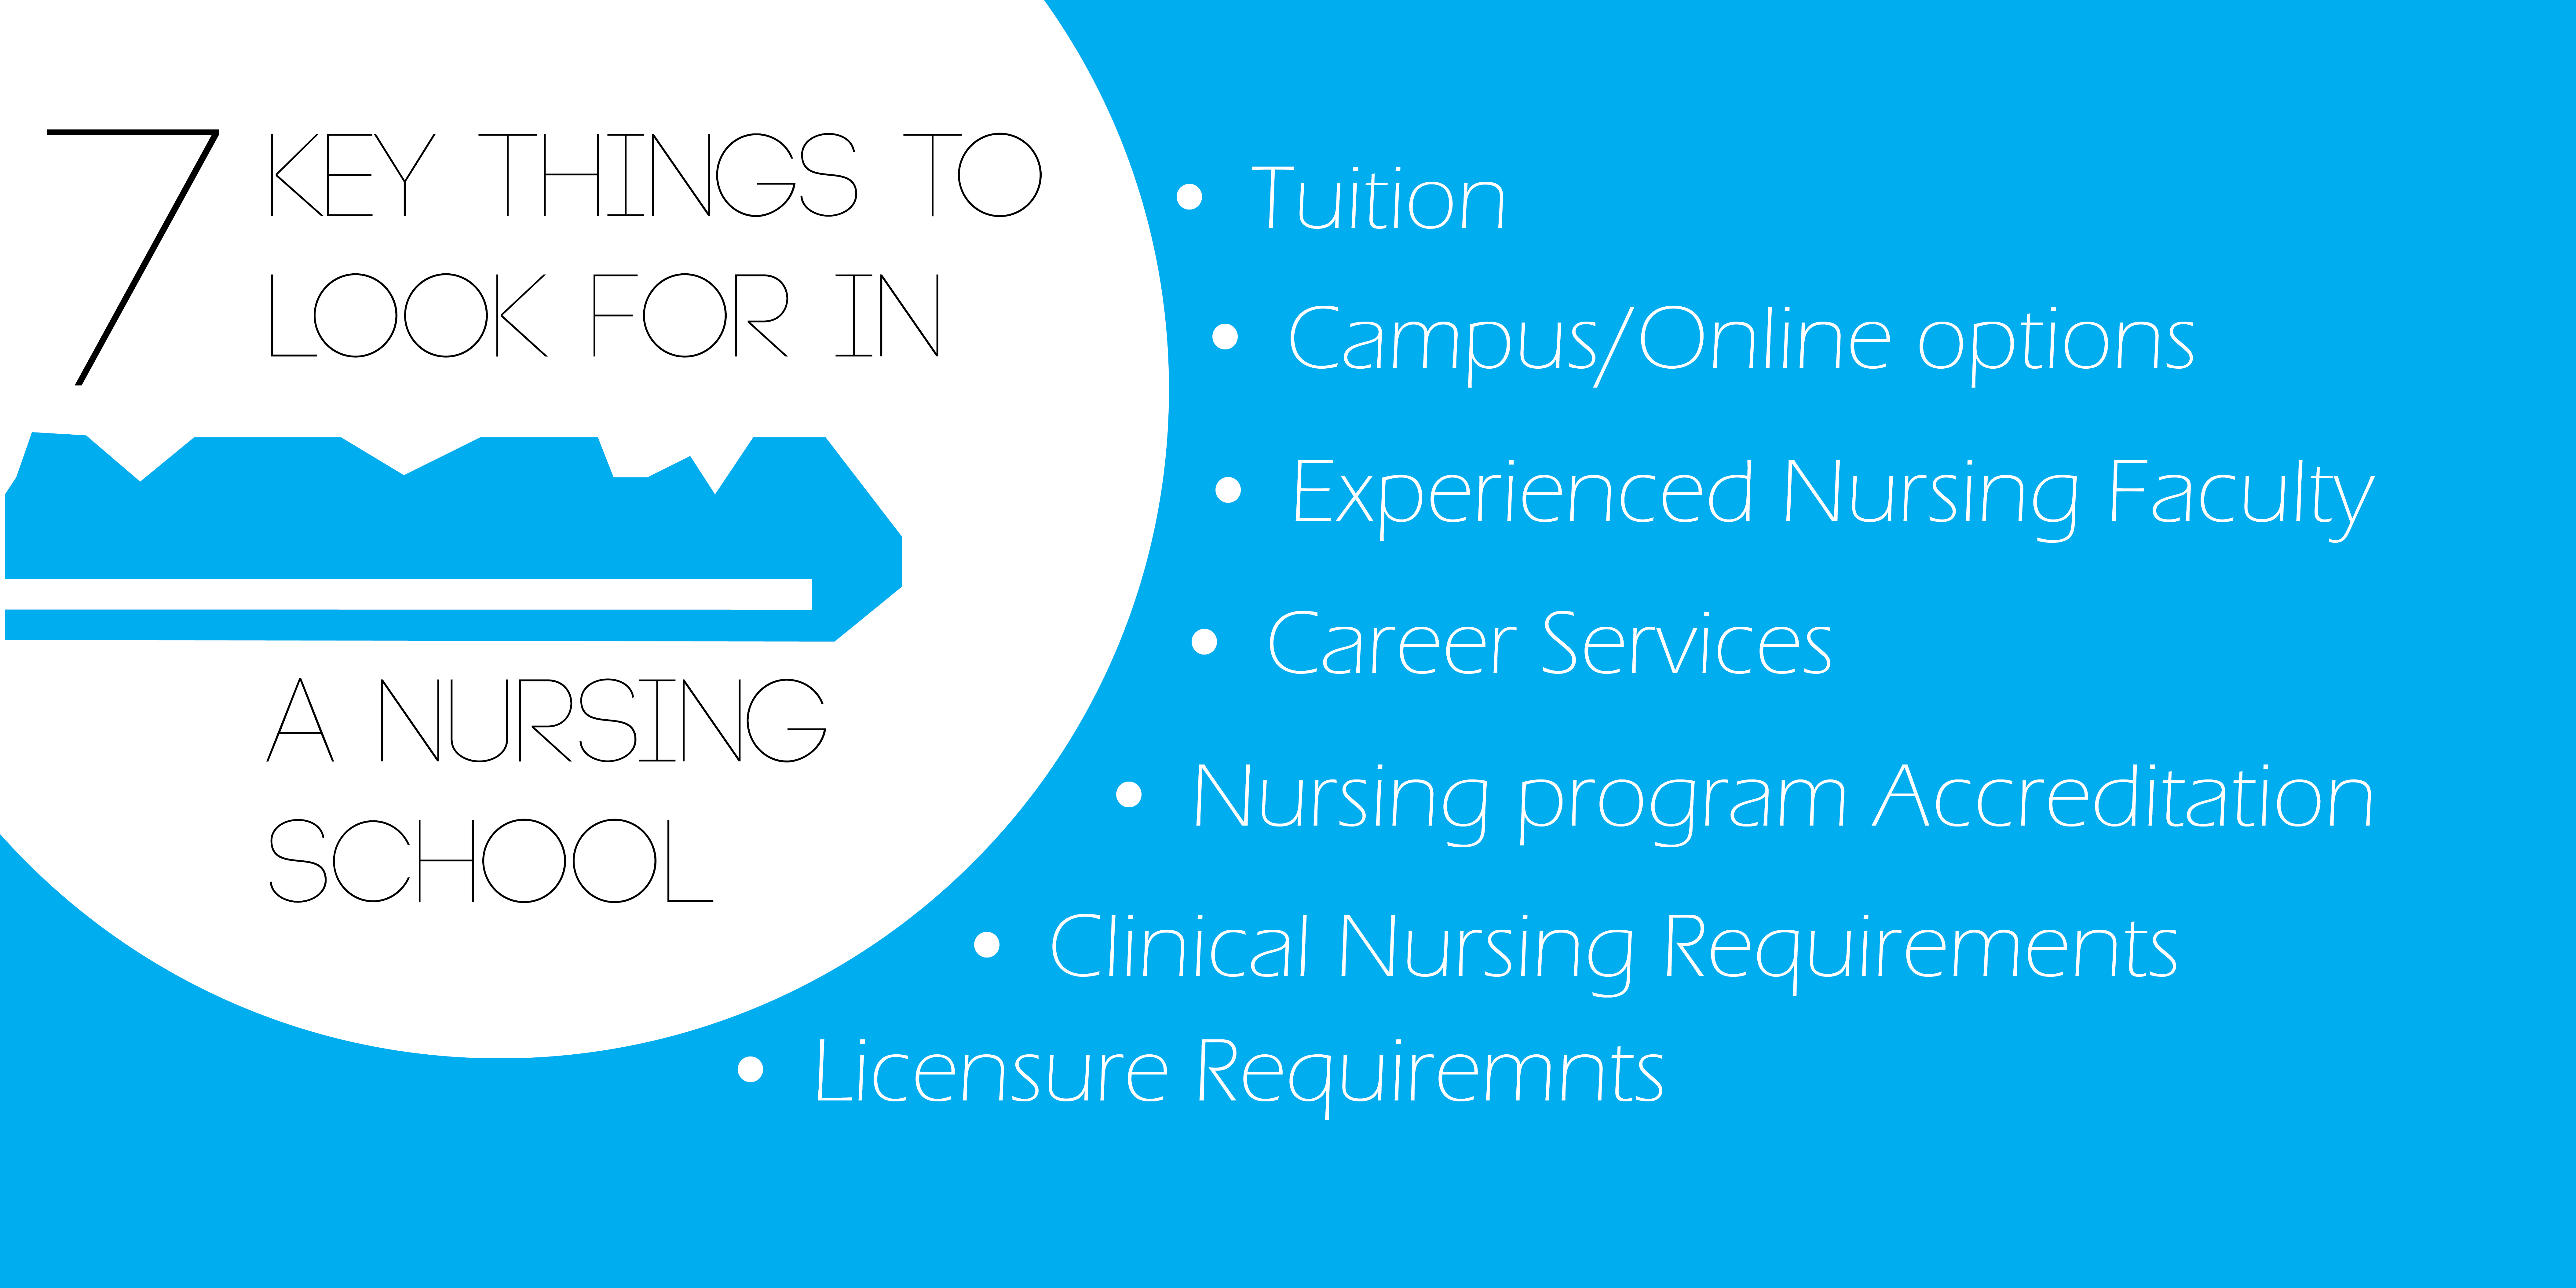 Real Advice For Finding Top Undergraduate Nursing Schools 2017